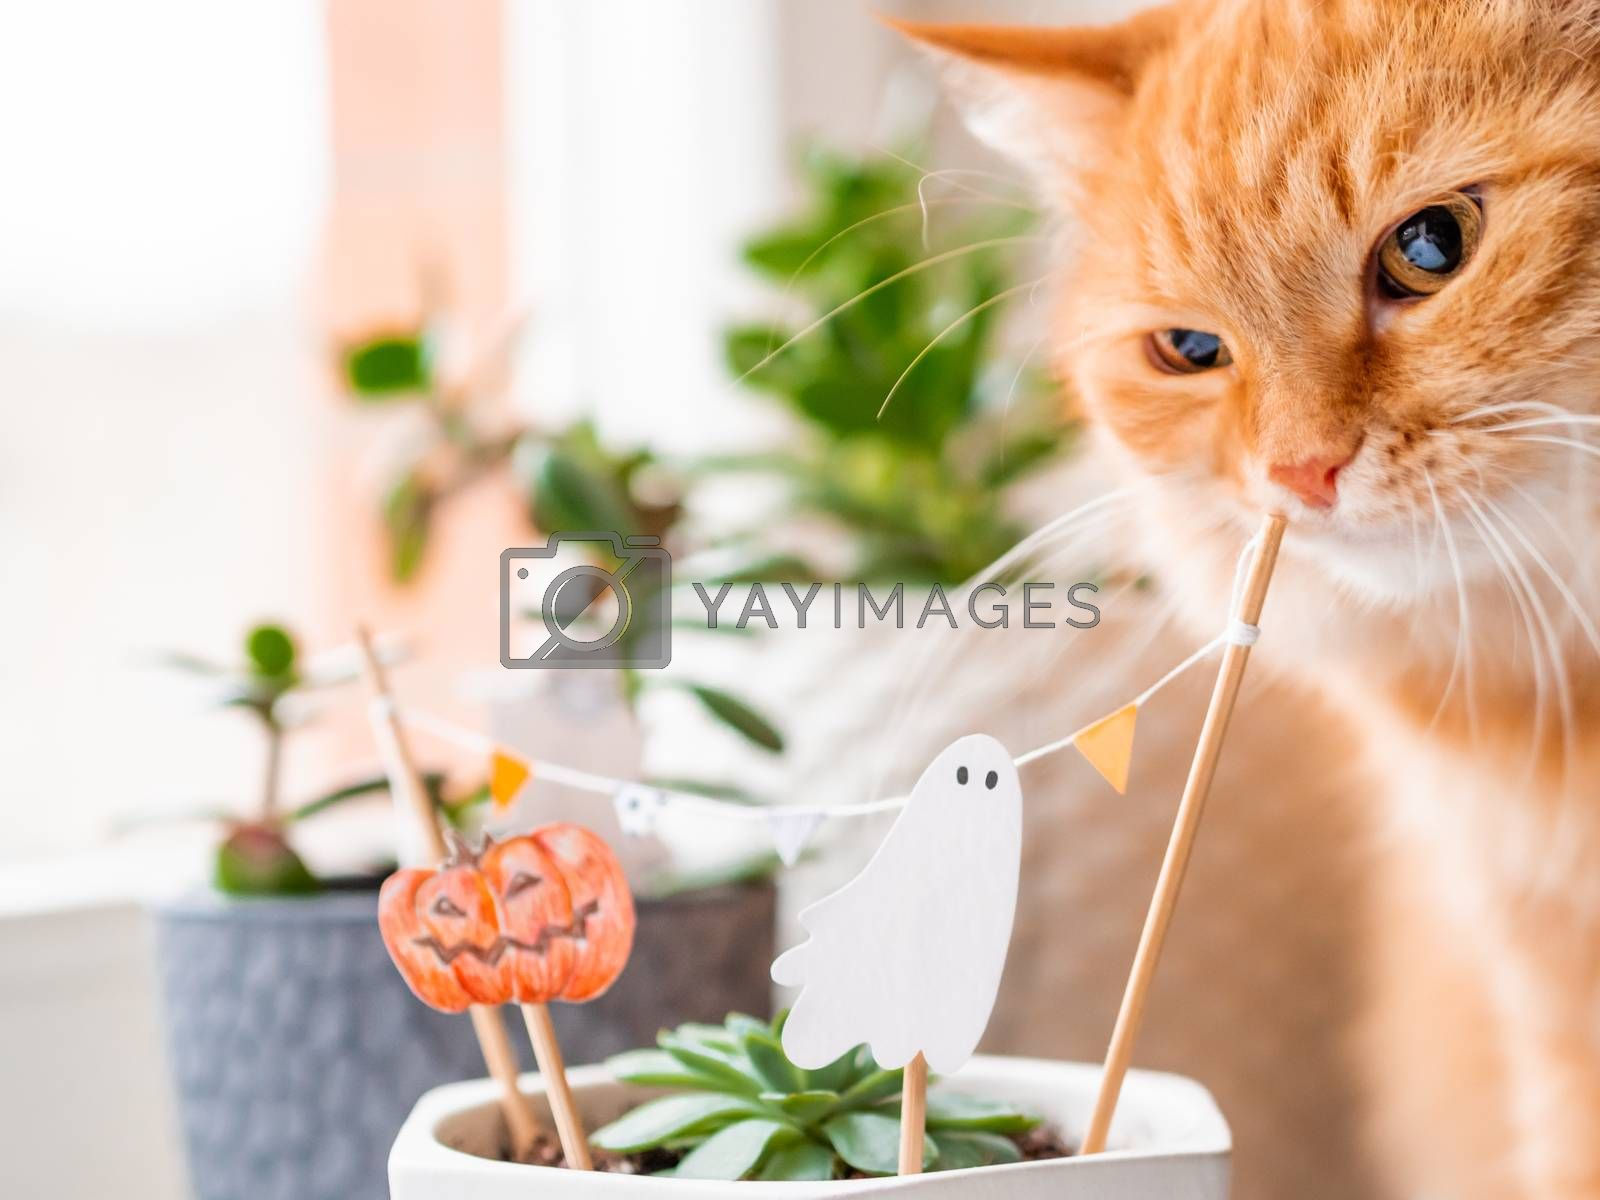 Cute ginger cat sniffs flower pots with handmade decorations for Halloween. Painted ghost and pumpkin in flower pot with succulent plant. Cozy home.